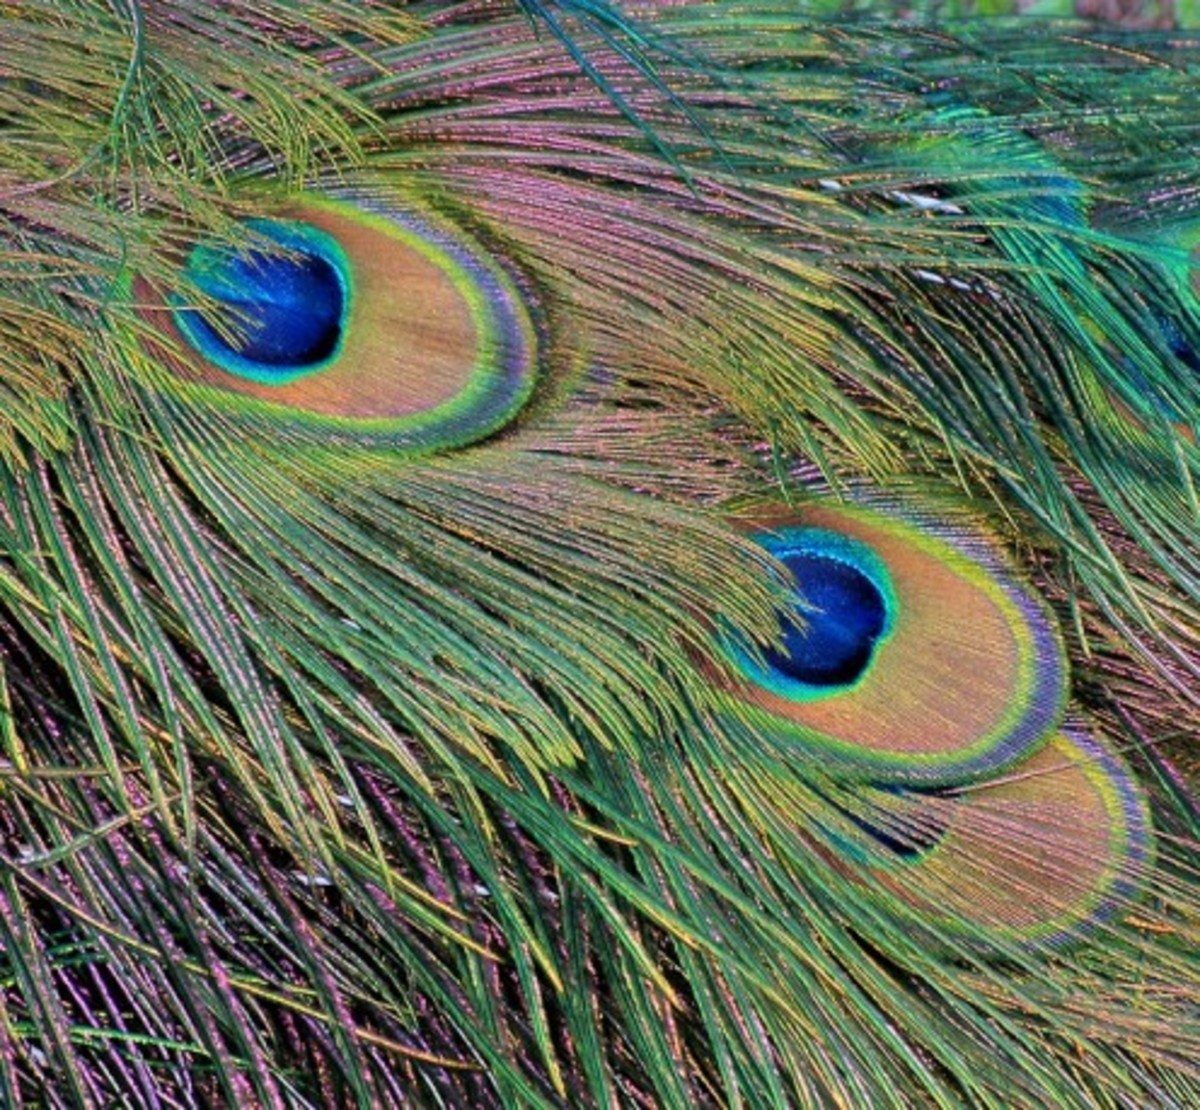 Pavo muticus feathers.